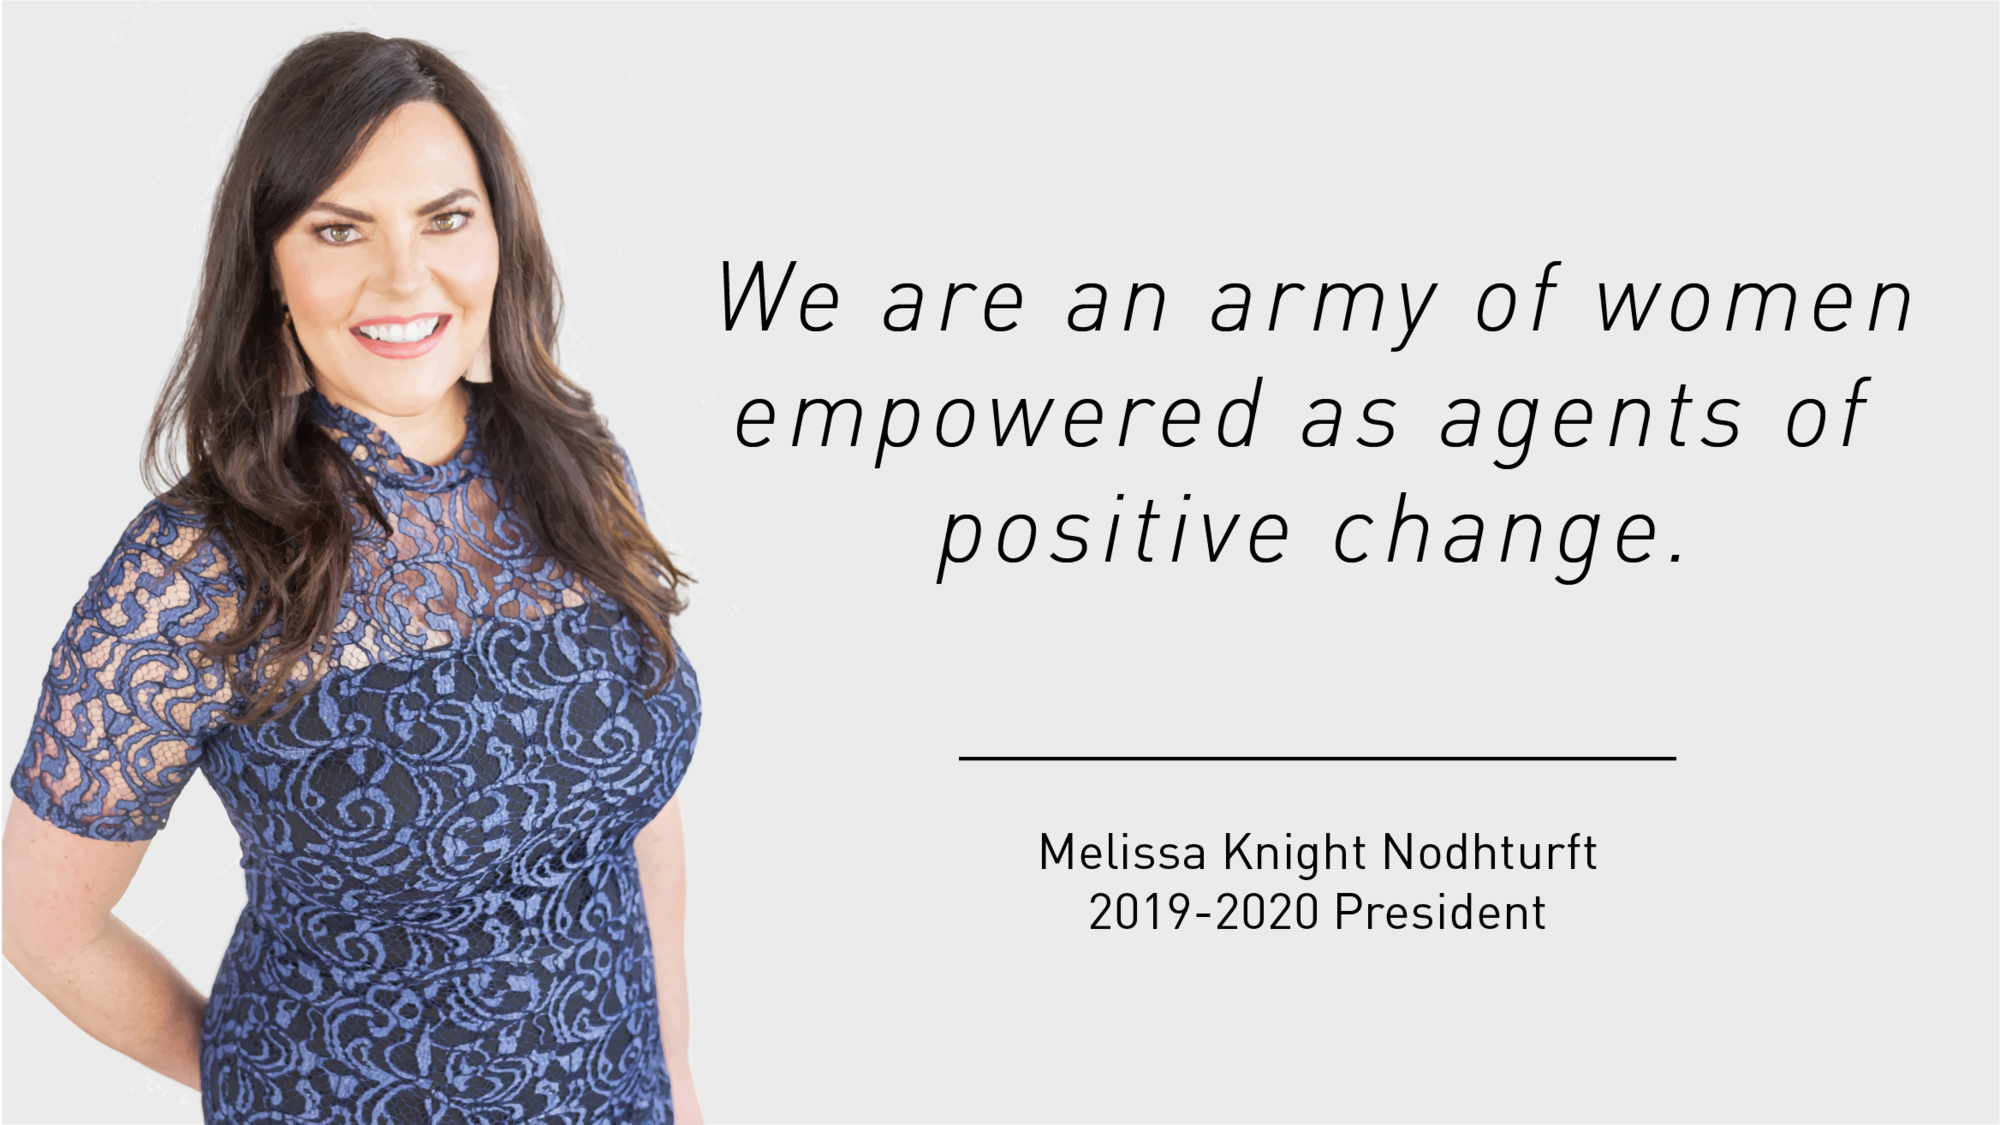 We are an army of women empowered as agents of positive change. Melissa Knight Nodhturft for The Junior League of Tampa's 1926 Blog.